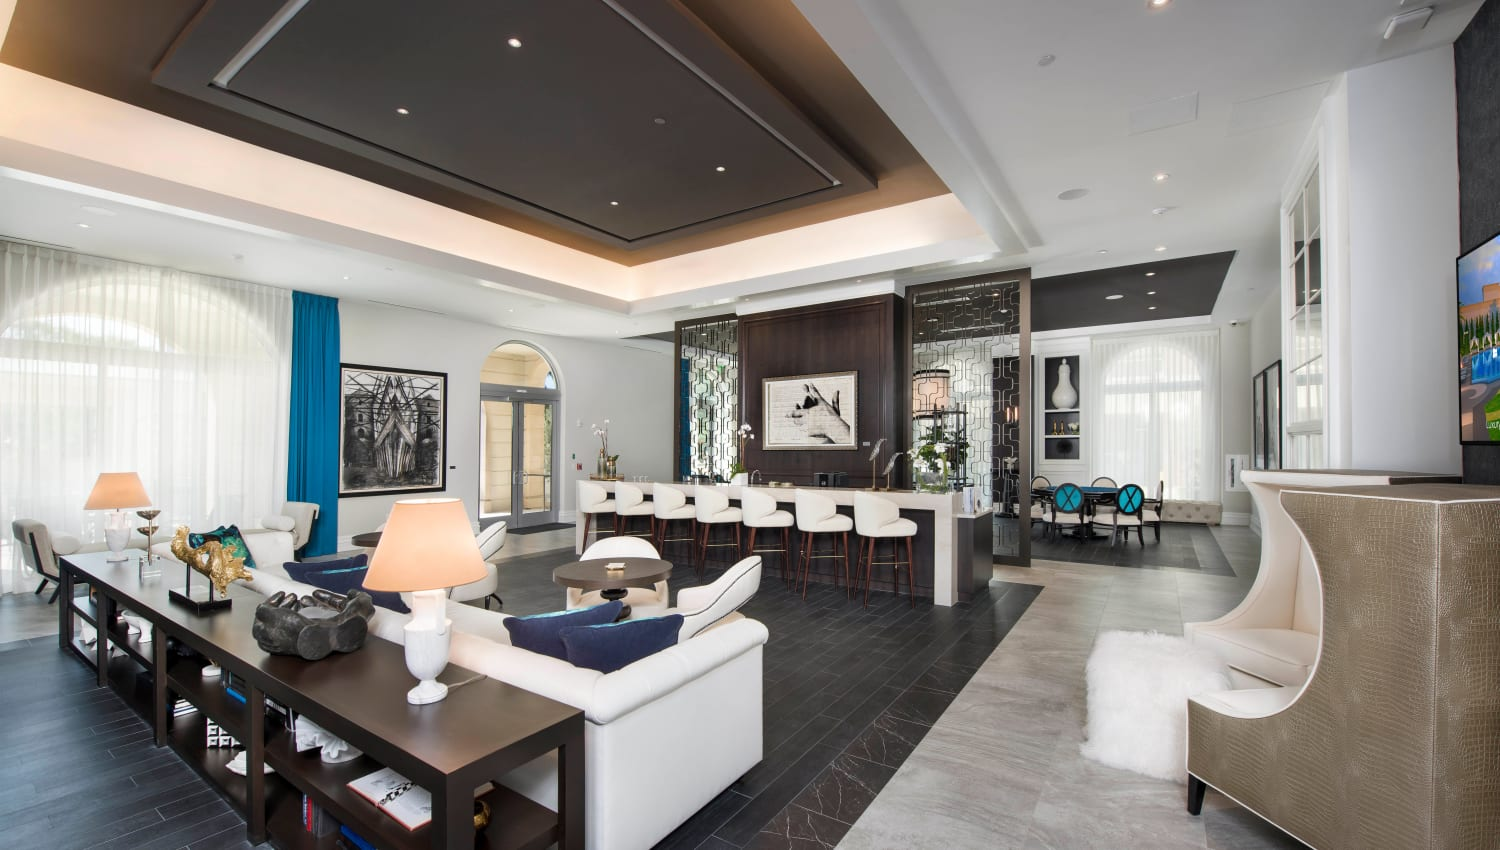 Modern furnishings and art adorn the clubhouse bar at Olympus Harbour Island in Tampa, Florida